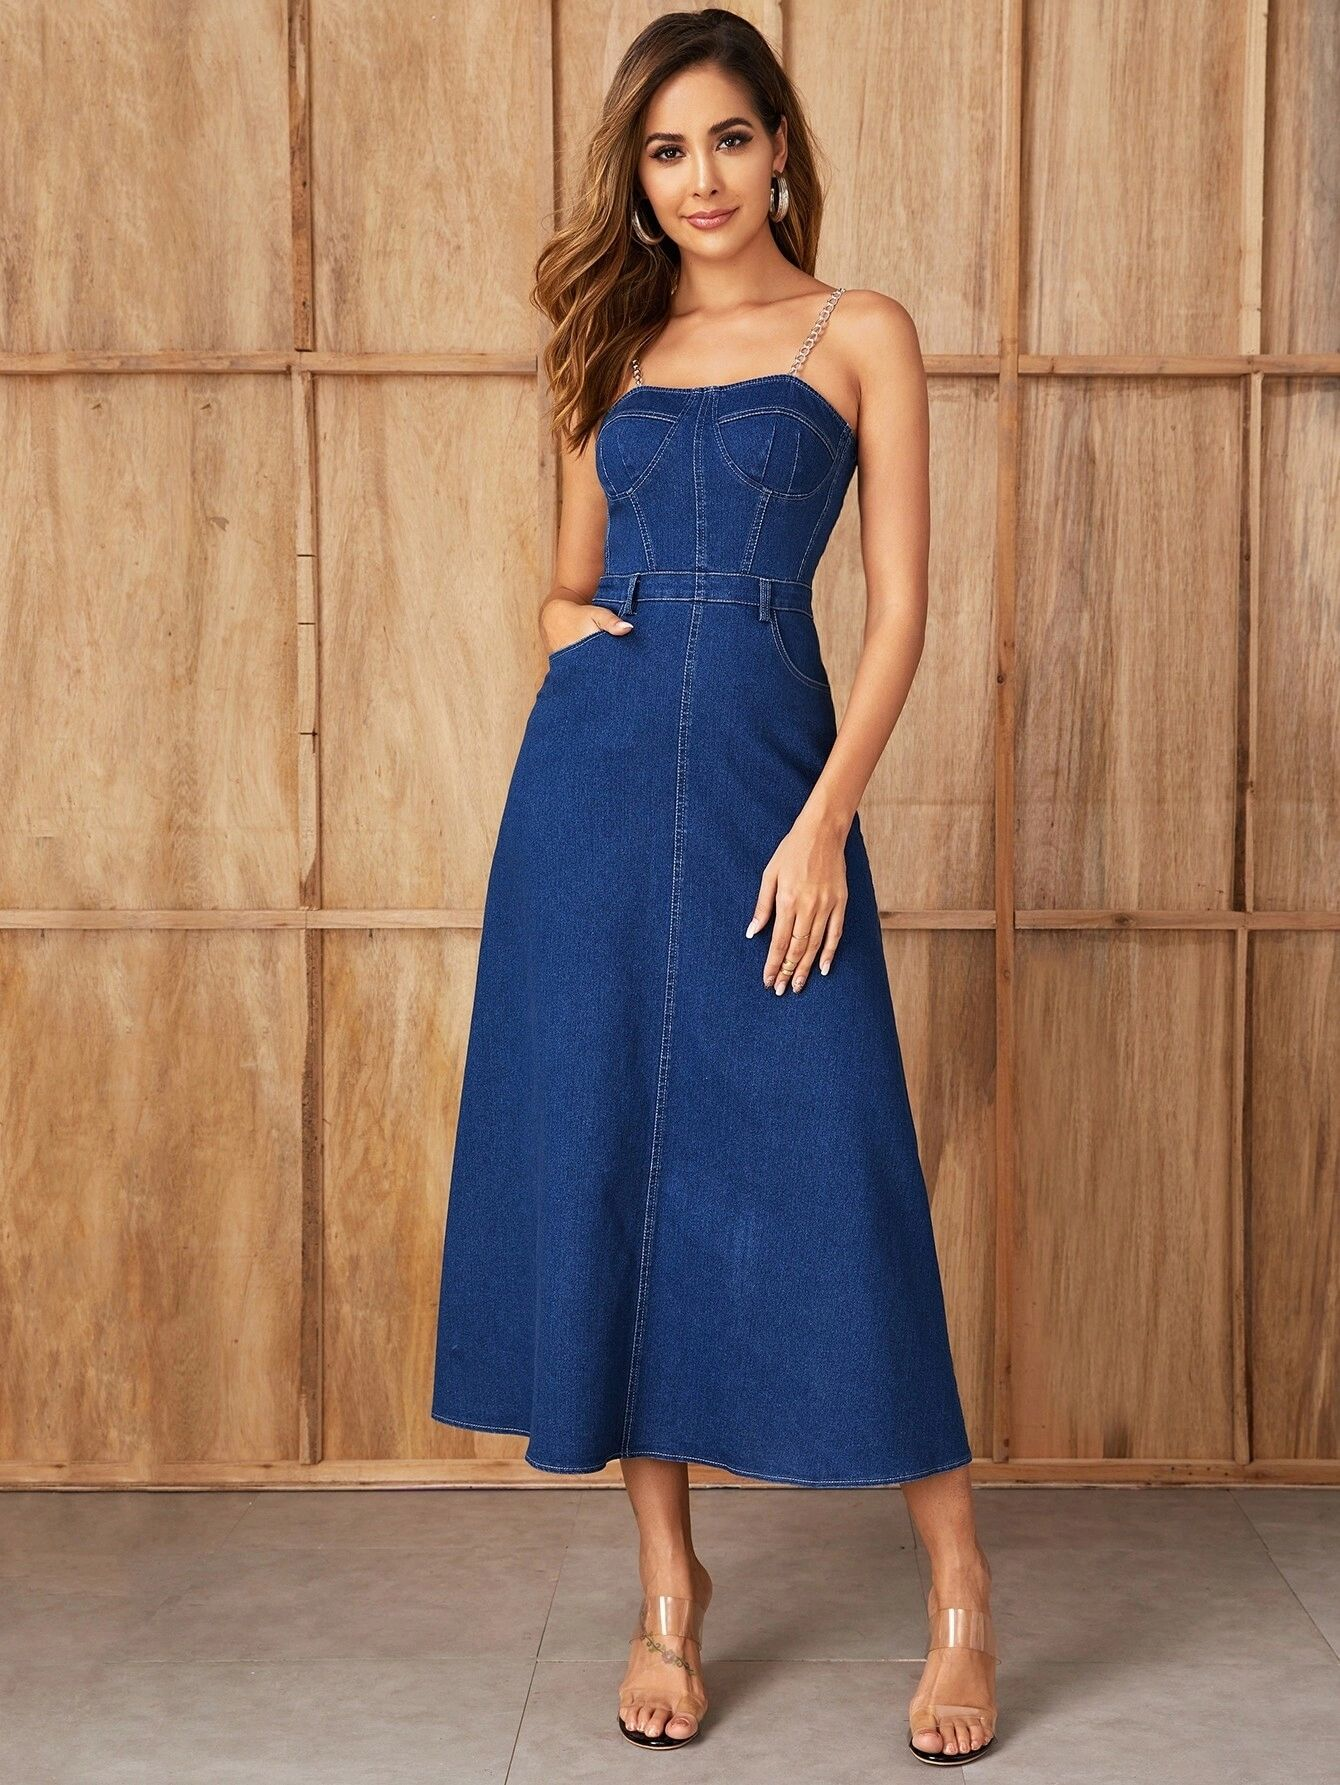 SHEIN Zip Back Fit & Flare Chain Strap Denim Dress